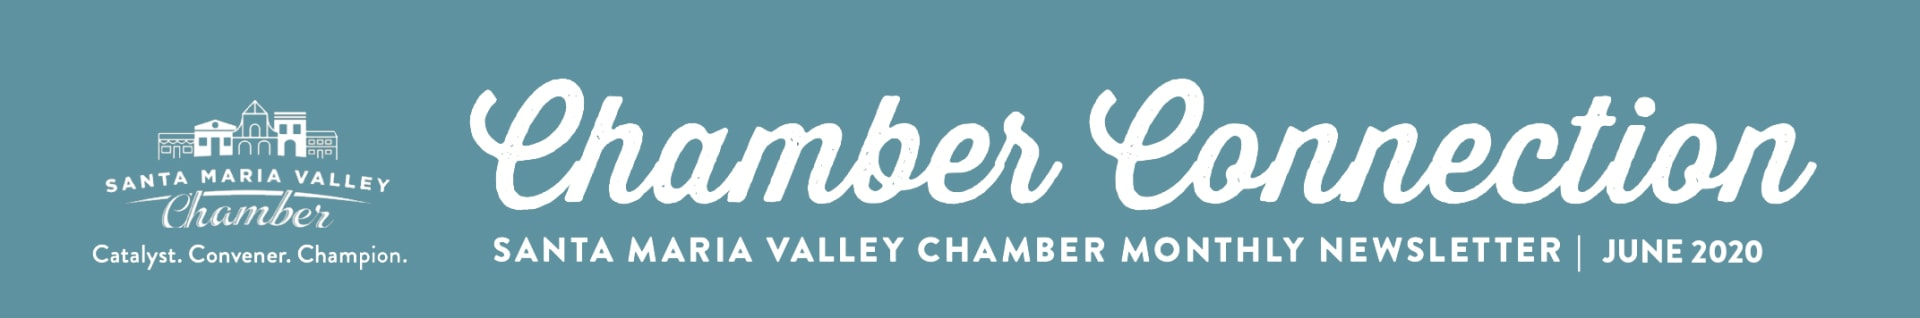 Santa Maria Valley Chamber of Commerce Newsletter Chamber Connection June 2020